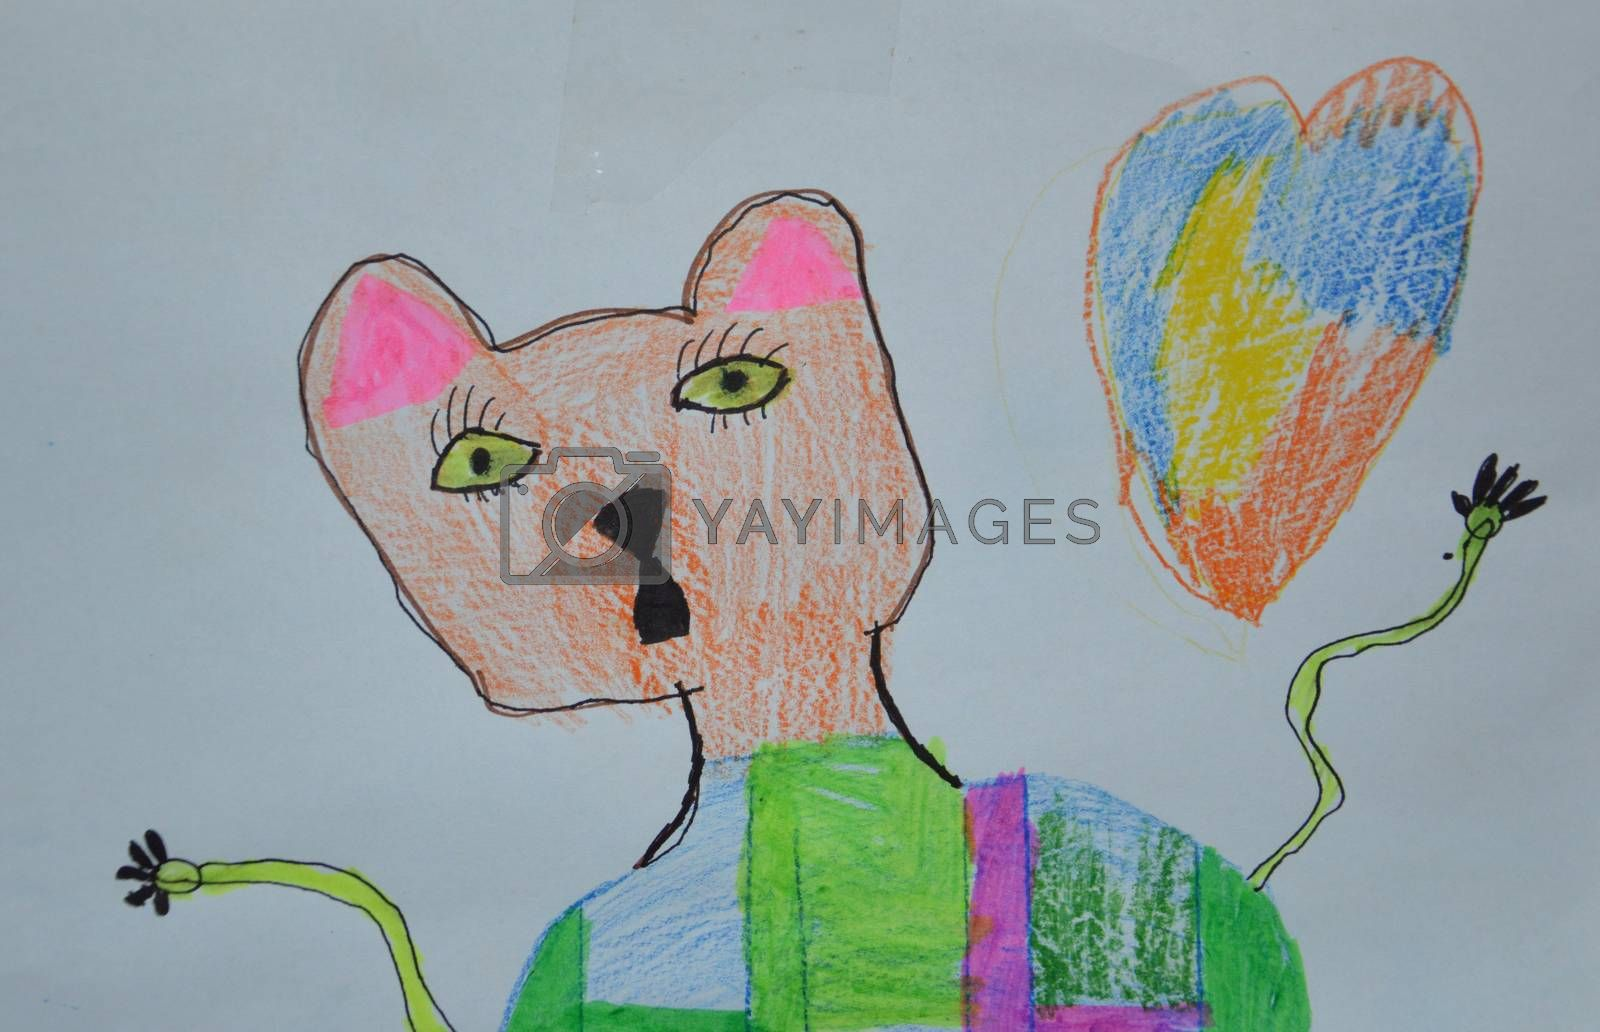 Children's drawing of a bear drawn with felt-tip pens and pencil by Prokopenko